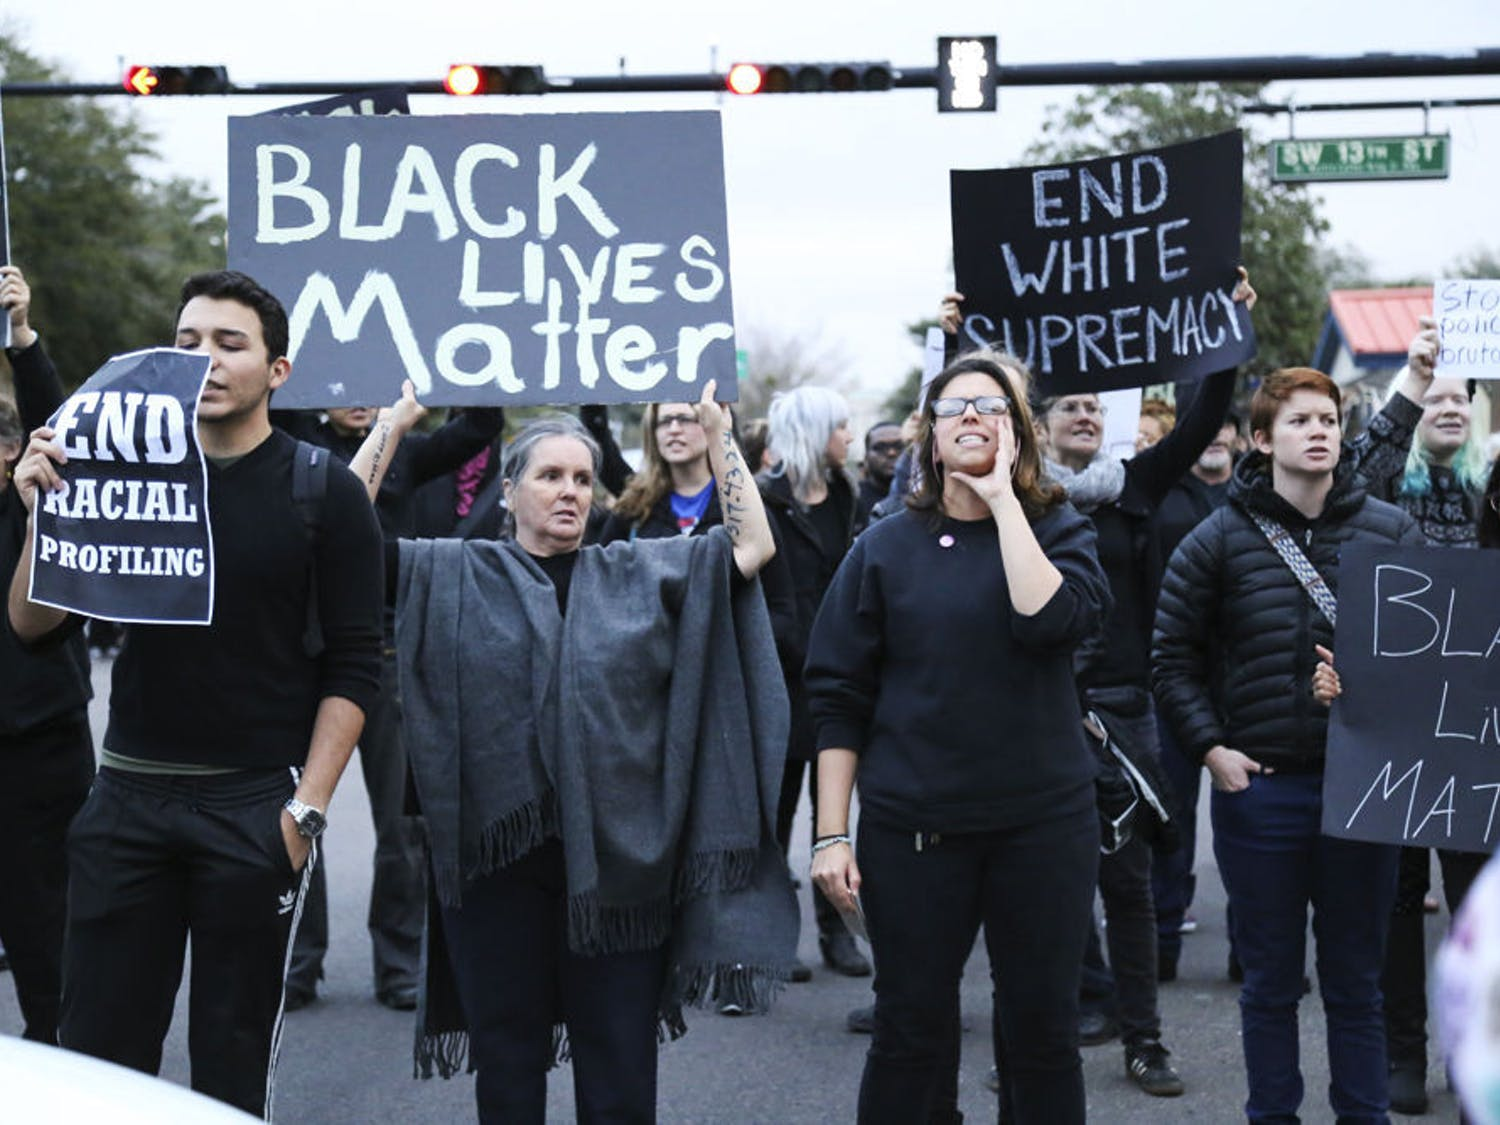 Protestors of the #BLACKLIVESMATTER march shout in unison as they block the intersection of 13th Street and University Ave on Monday afternoon.